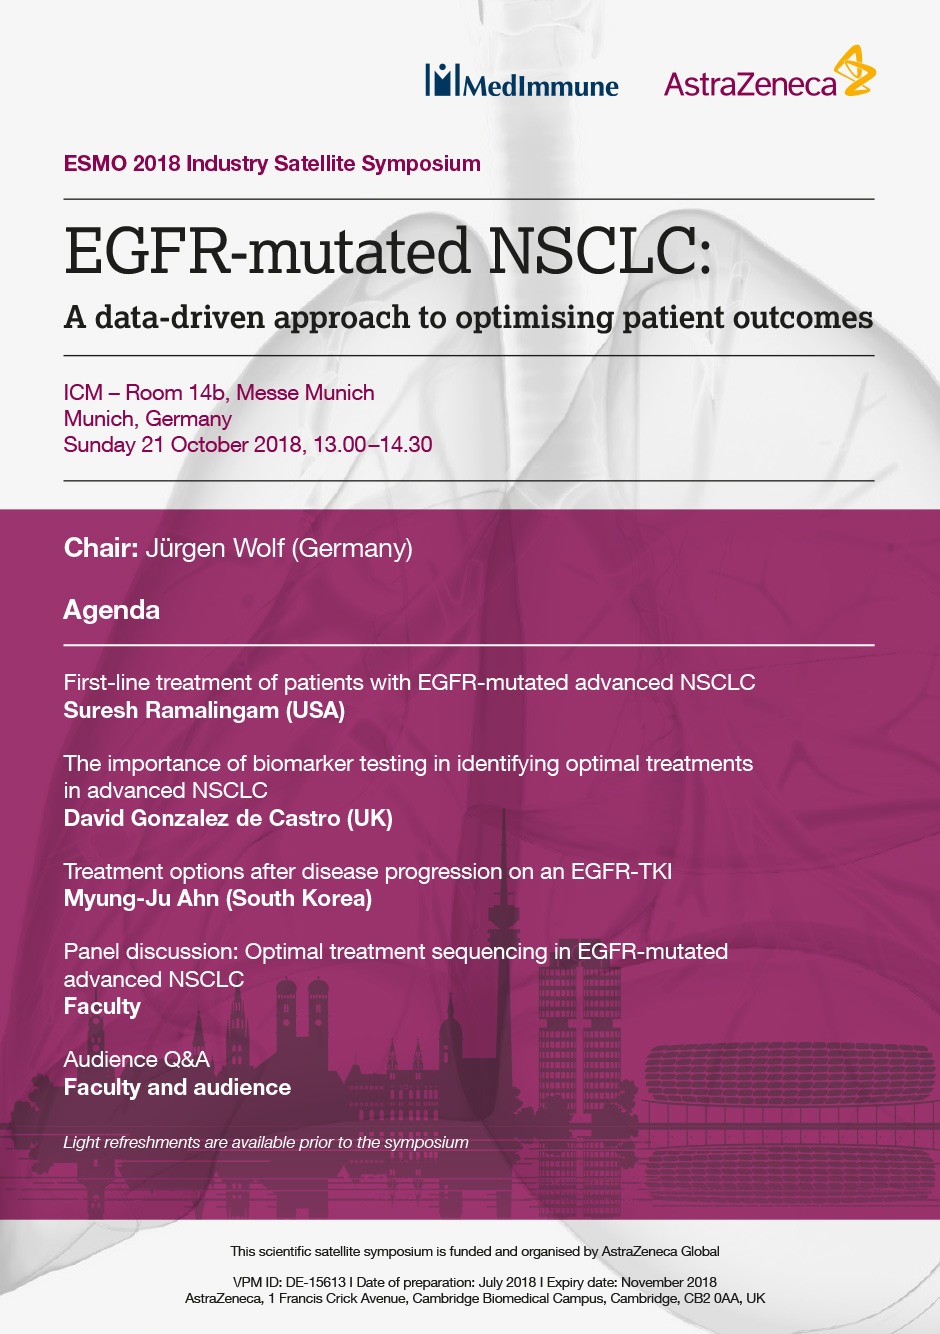 EGFR-Mutated NSCLC: A Data-Driven Approach to Optimising Patient Outcomes